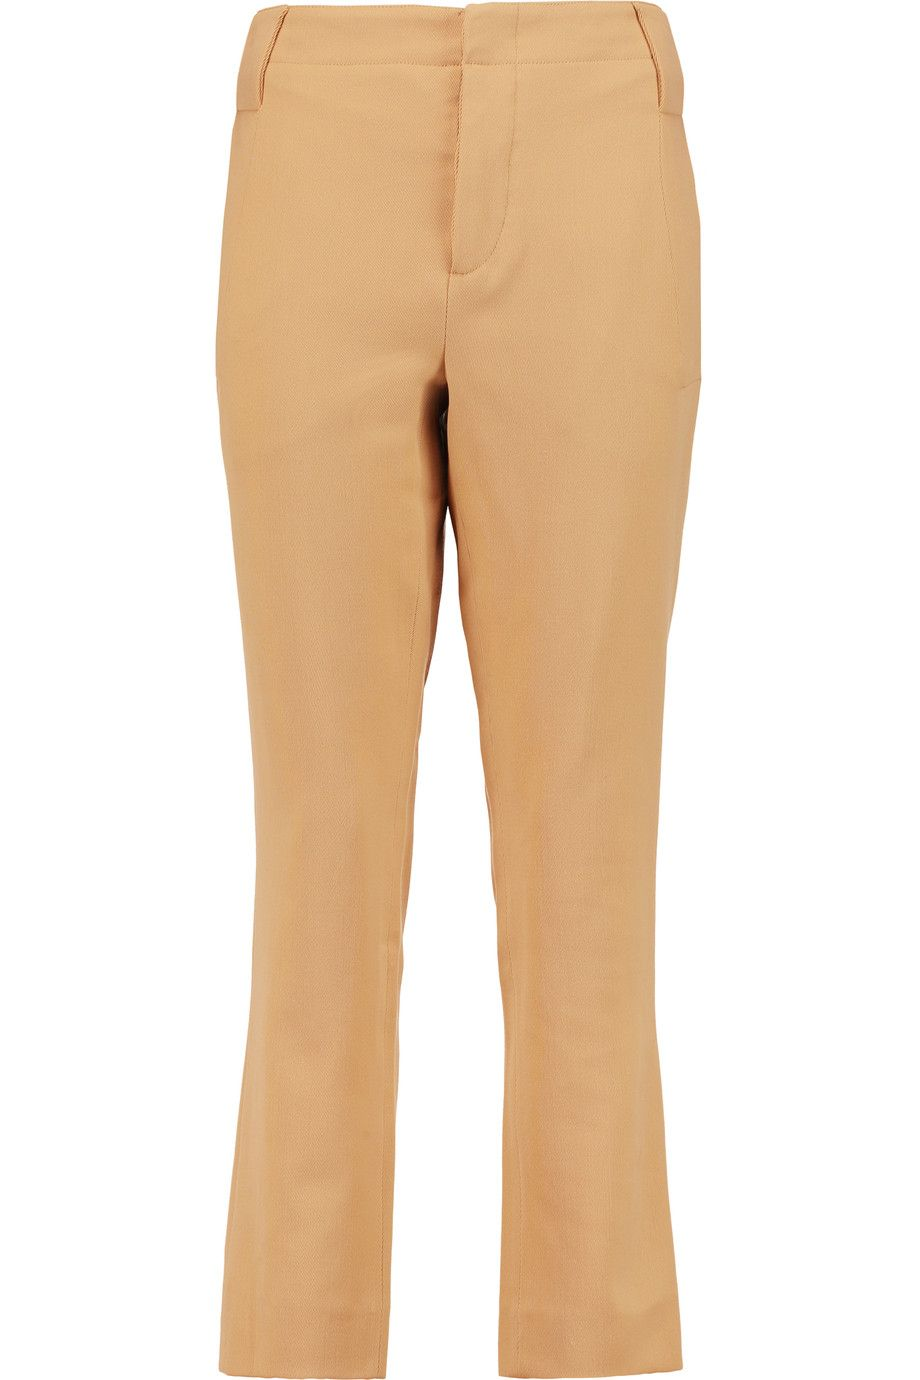 MARNI Wool-Twill Straight-Leg Pants. #marni #cloth #pants